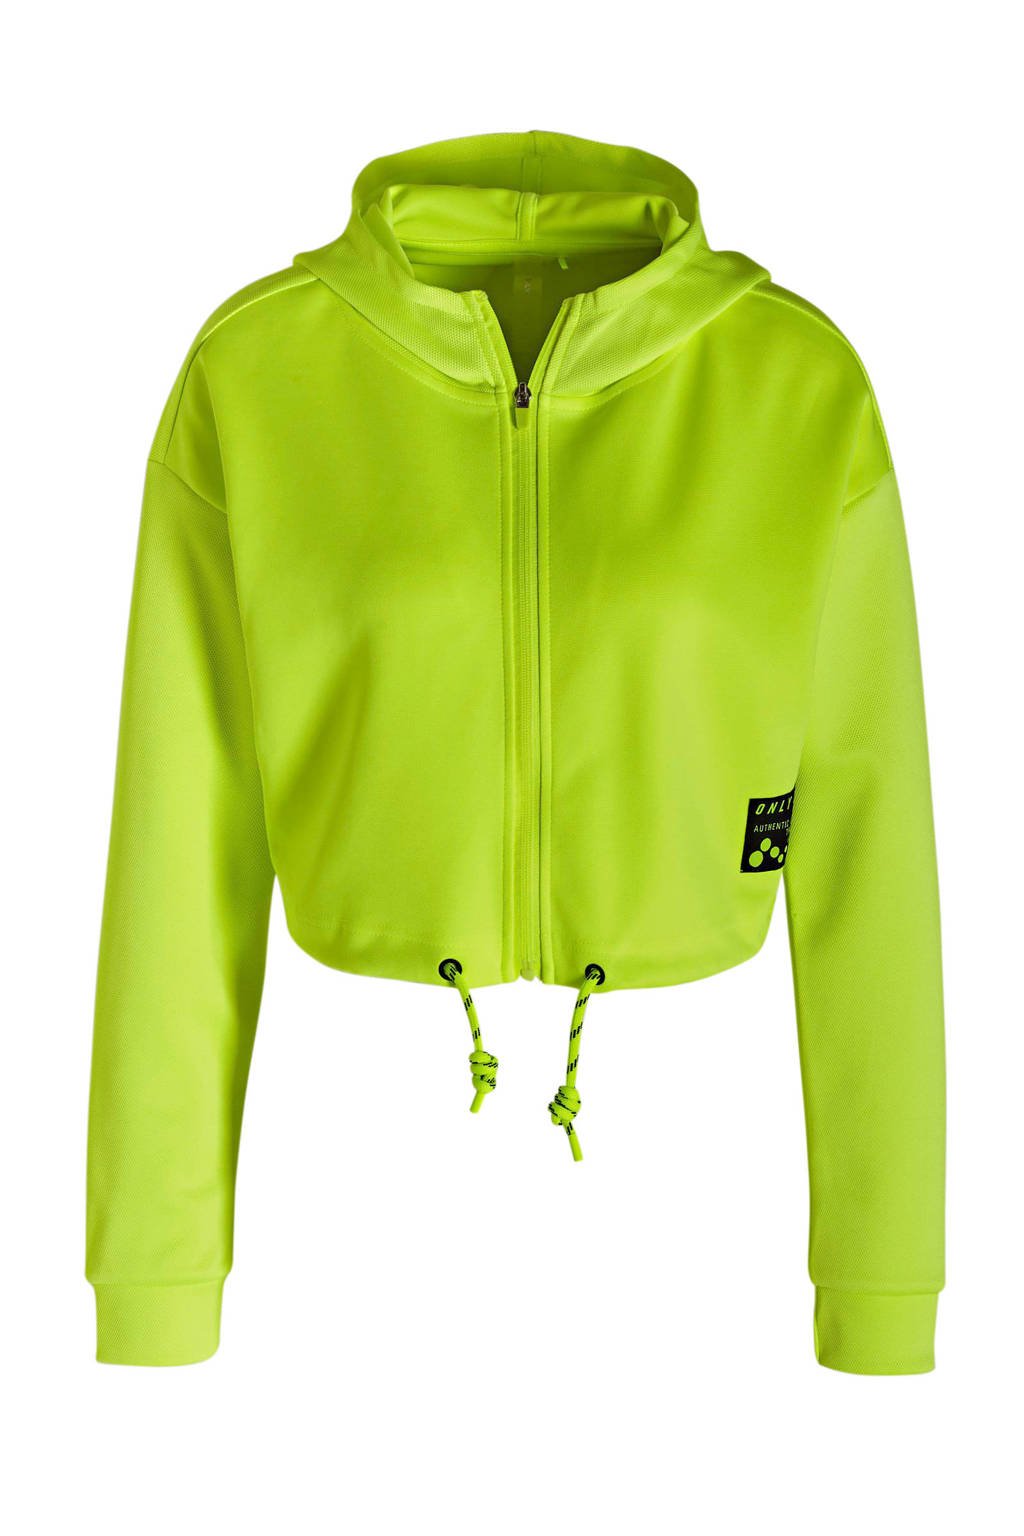 ONLY PLAY cropped sportsweater neon geel, Neon geel